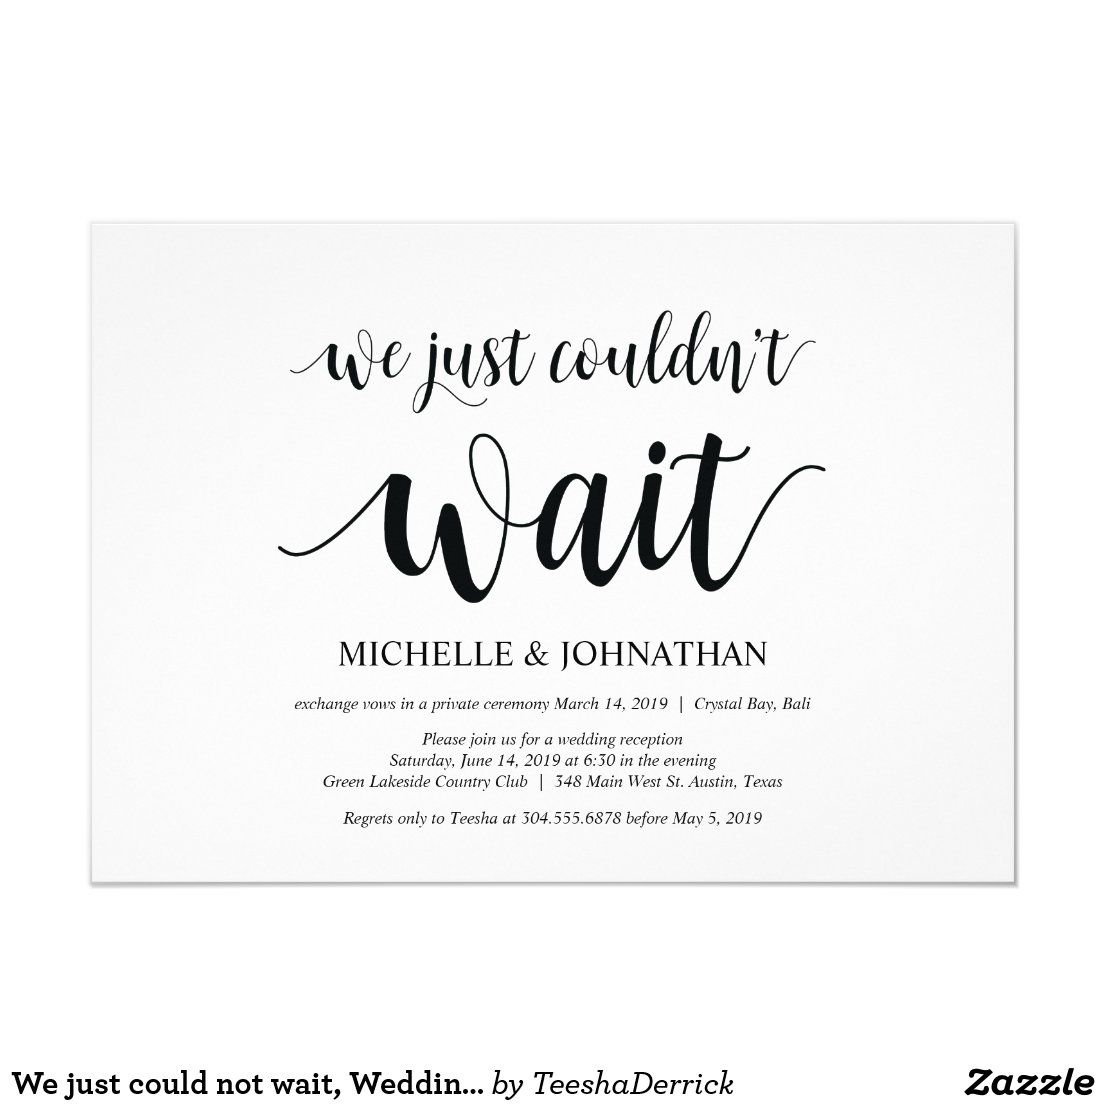 Vow Renewal Vows Anniversary Invites Anniversary Invitation Card Wild Anniversary Invitations Celebration Anniversary Announcement